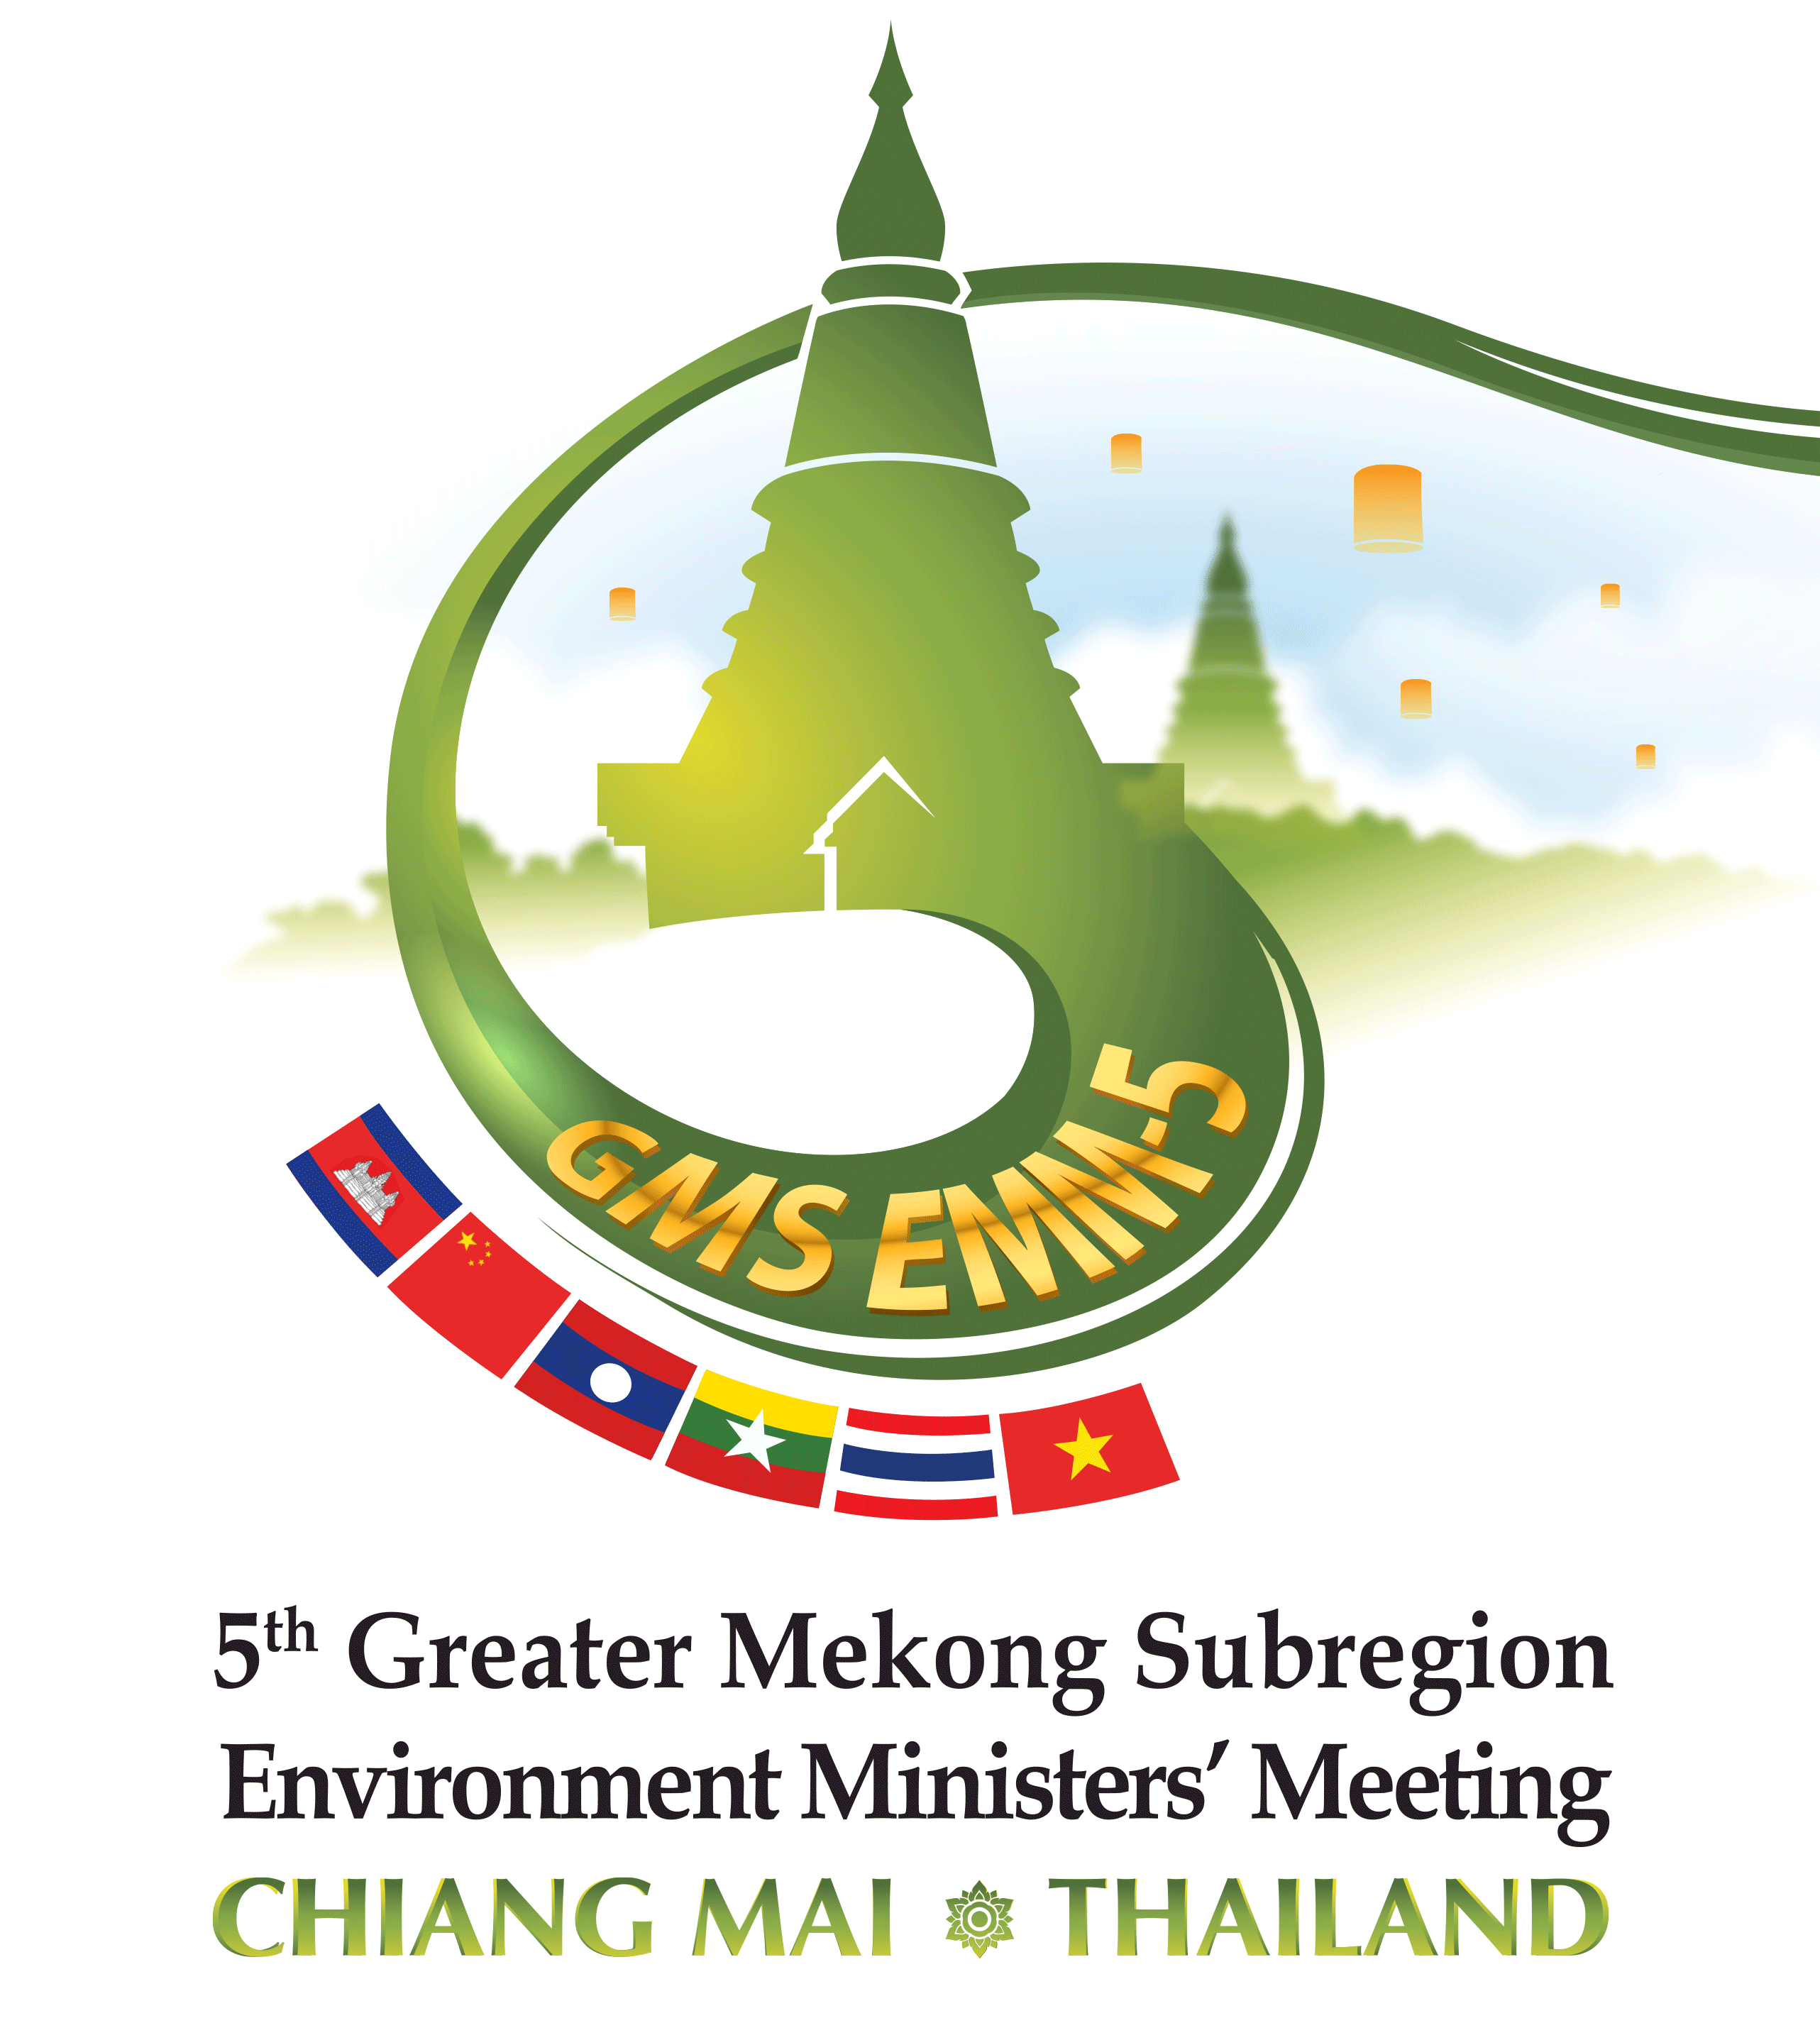 Fifth Greater Mekong Subregion Environment Ministers' Meeting - Chiang Mai - Thailand